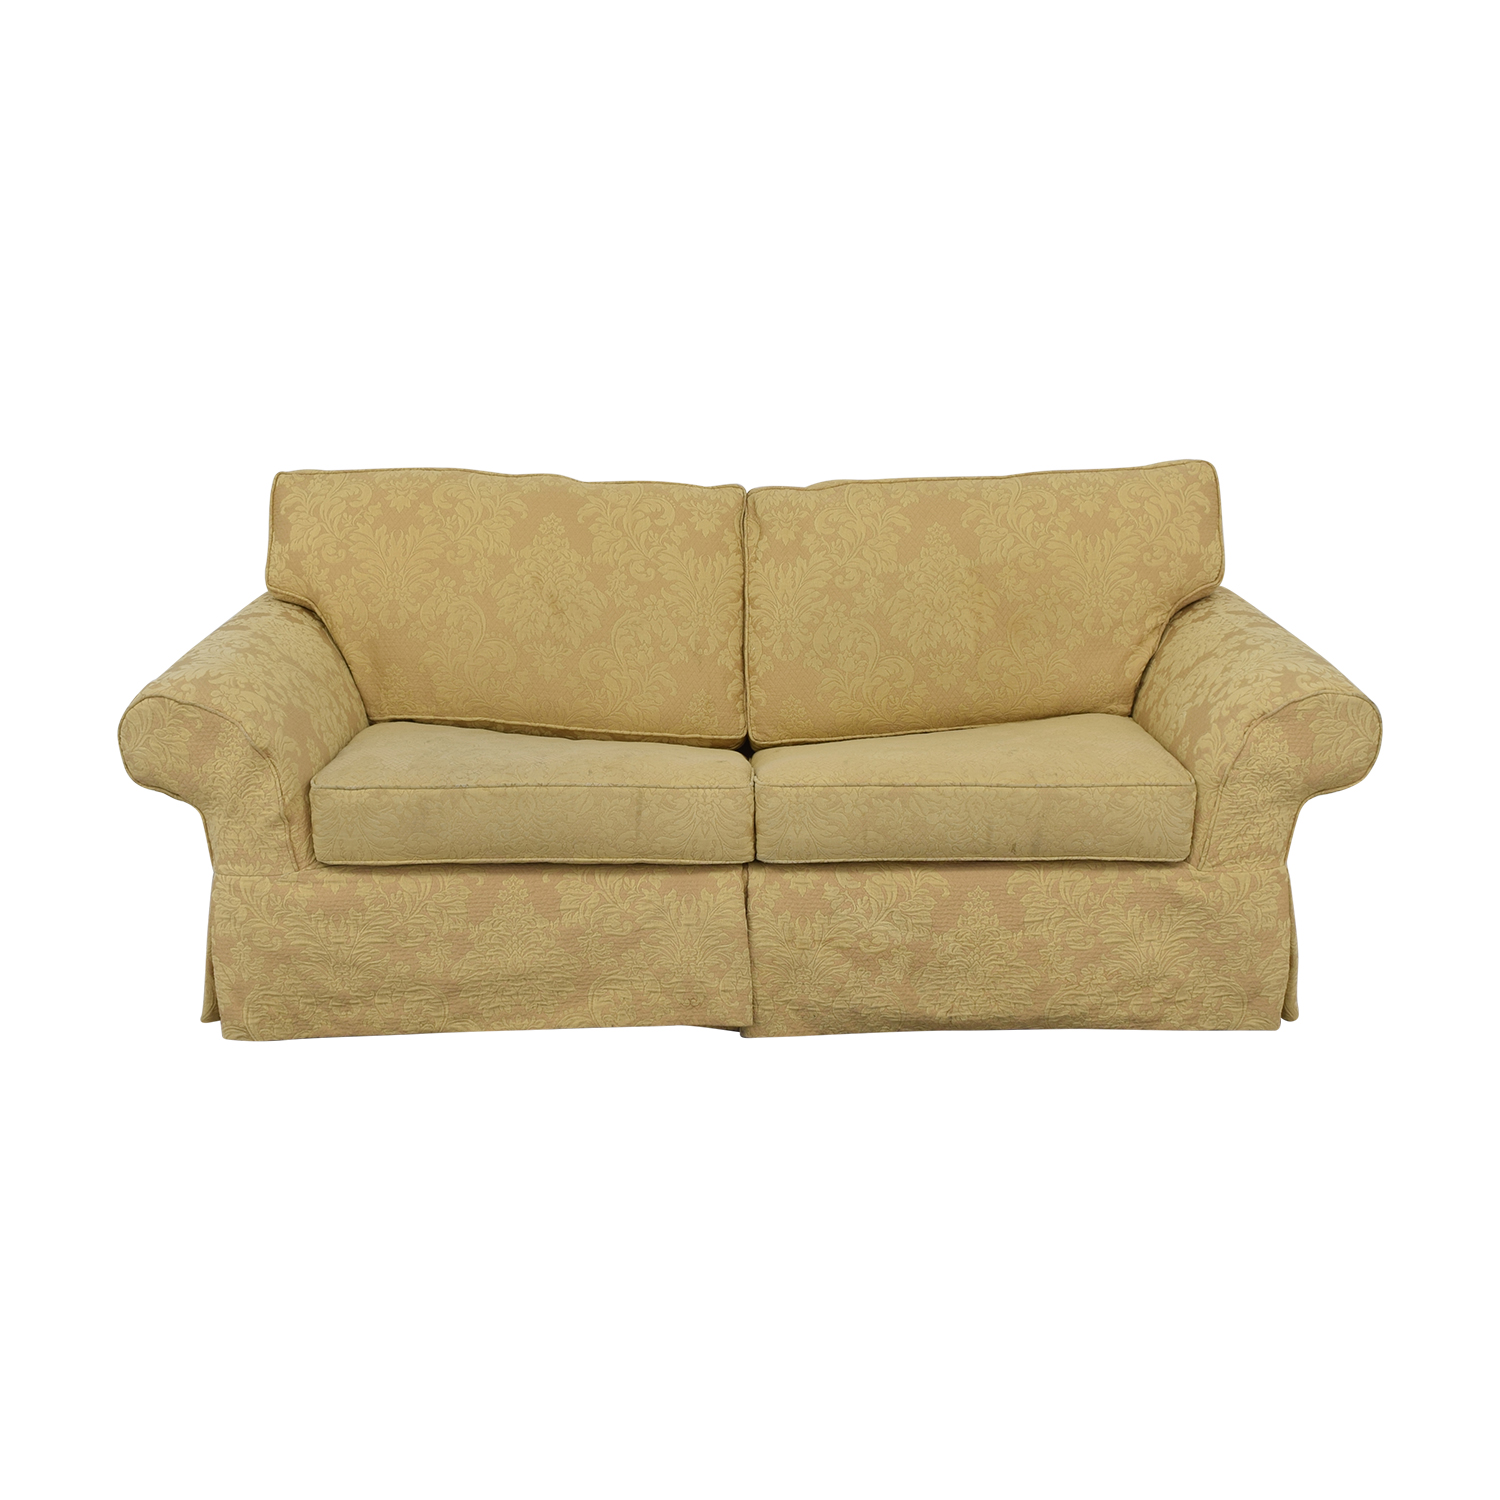 Domain Home Domain Home Portofino Sofa Sofa Beds